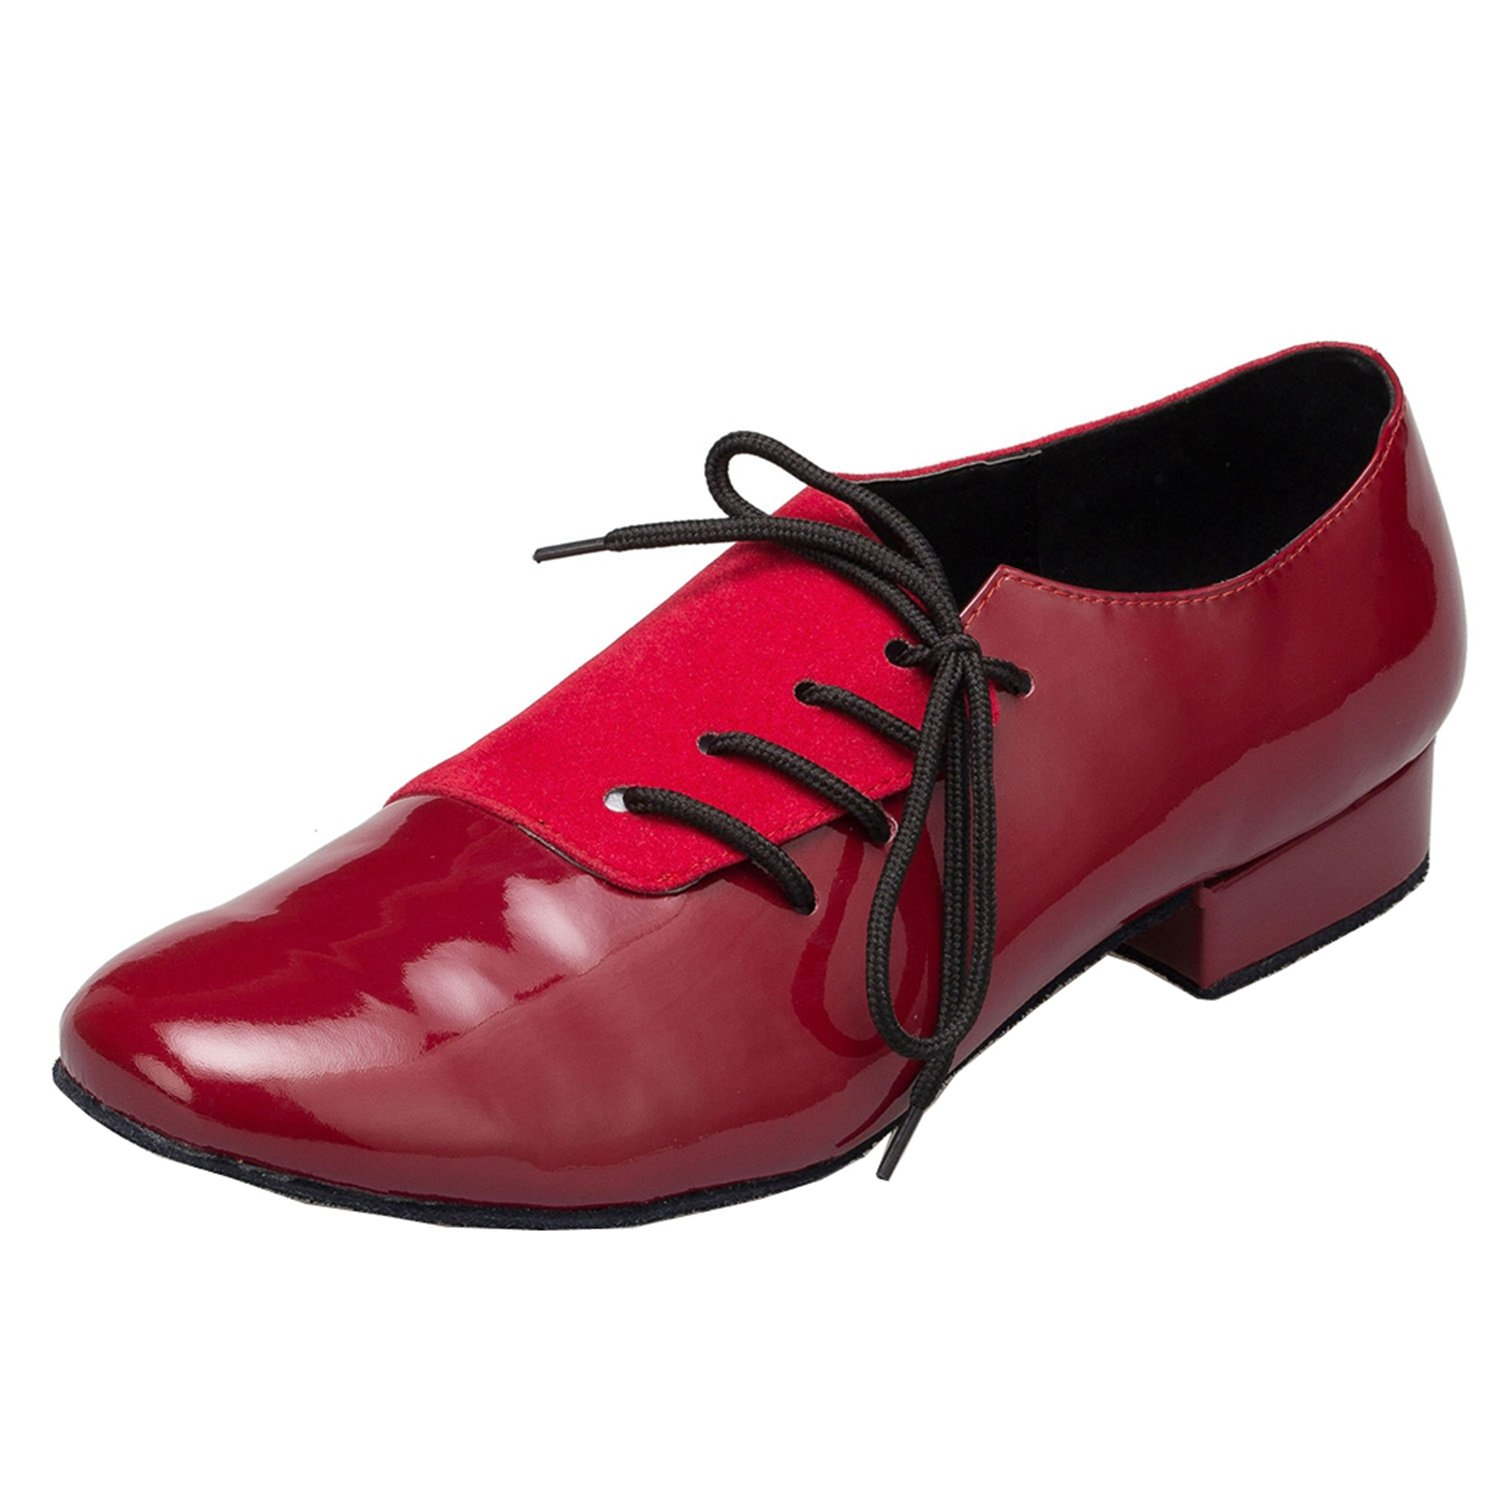 Minishion Men's TH149 Lace-up Pleather Wedding Ballroom Latin Taogo Dance Shoes MinishionUSYCL149